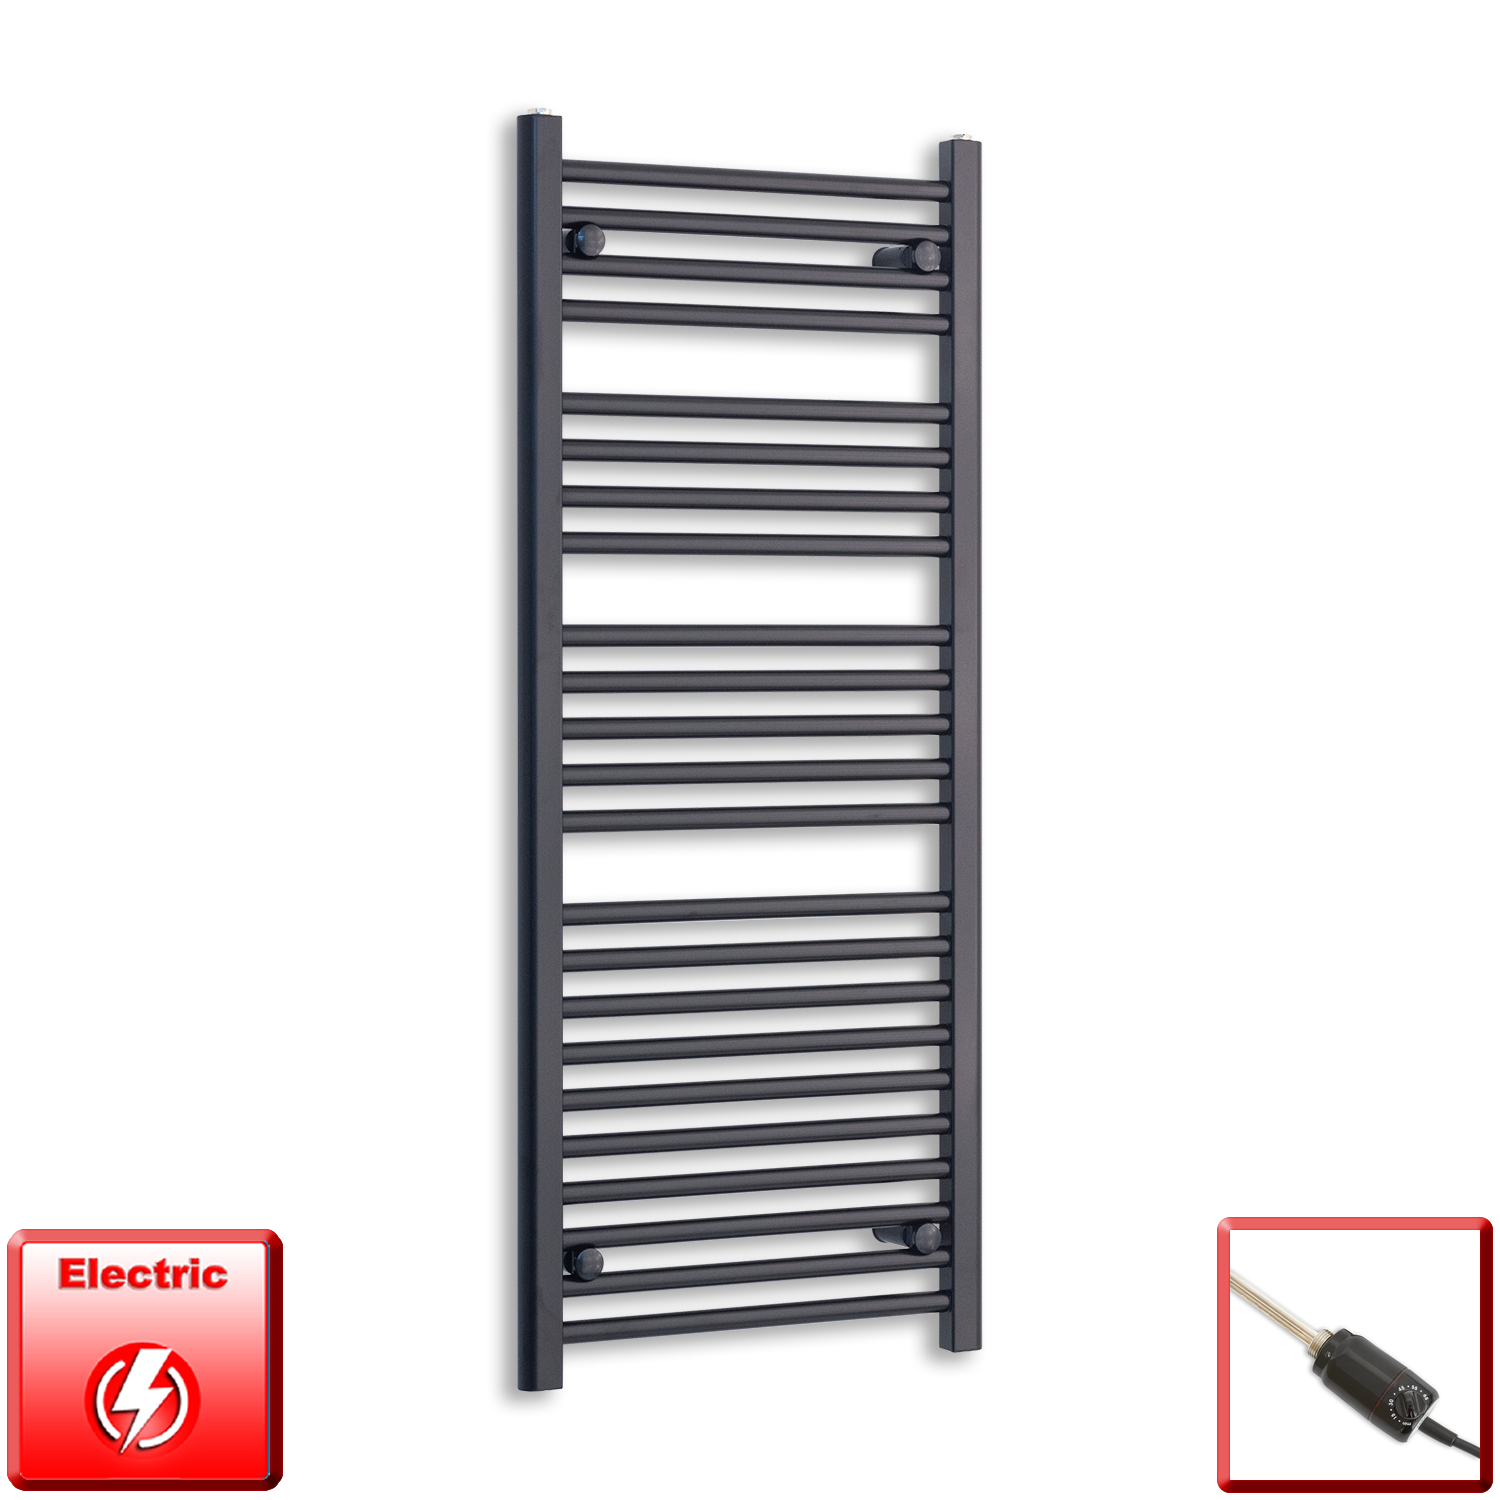 600mm Wide 1200mm High Pre-Filled Black Electric Towel Rail Radiator With Thermostatic GT Element